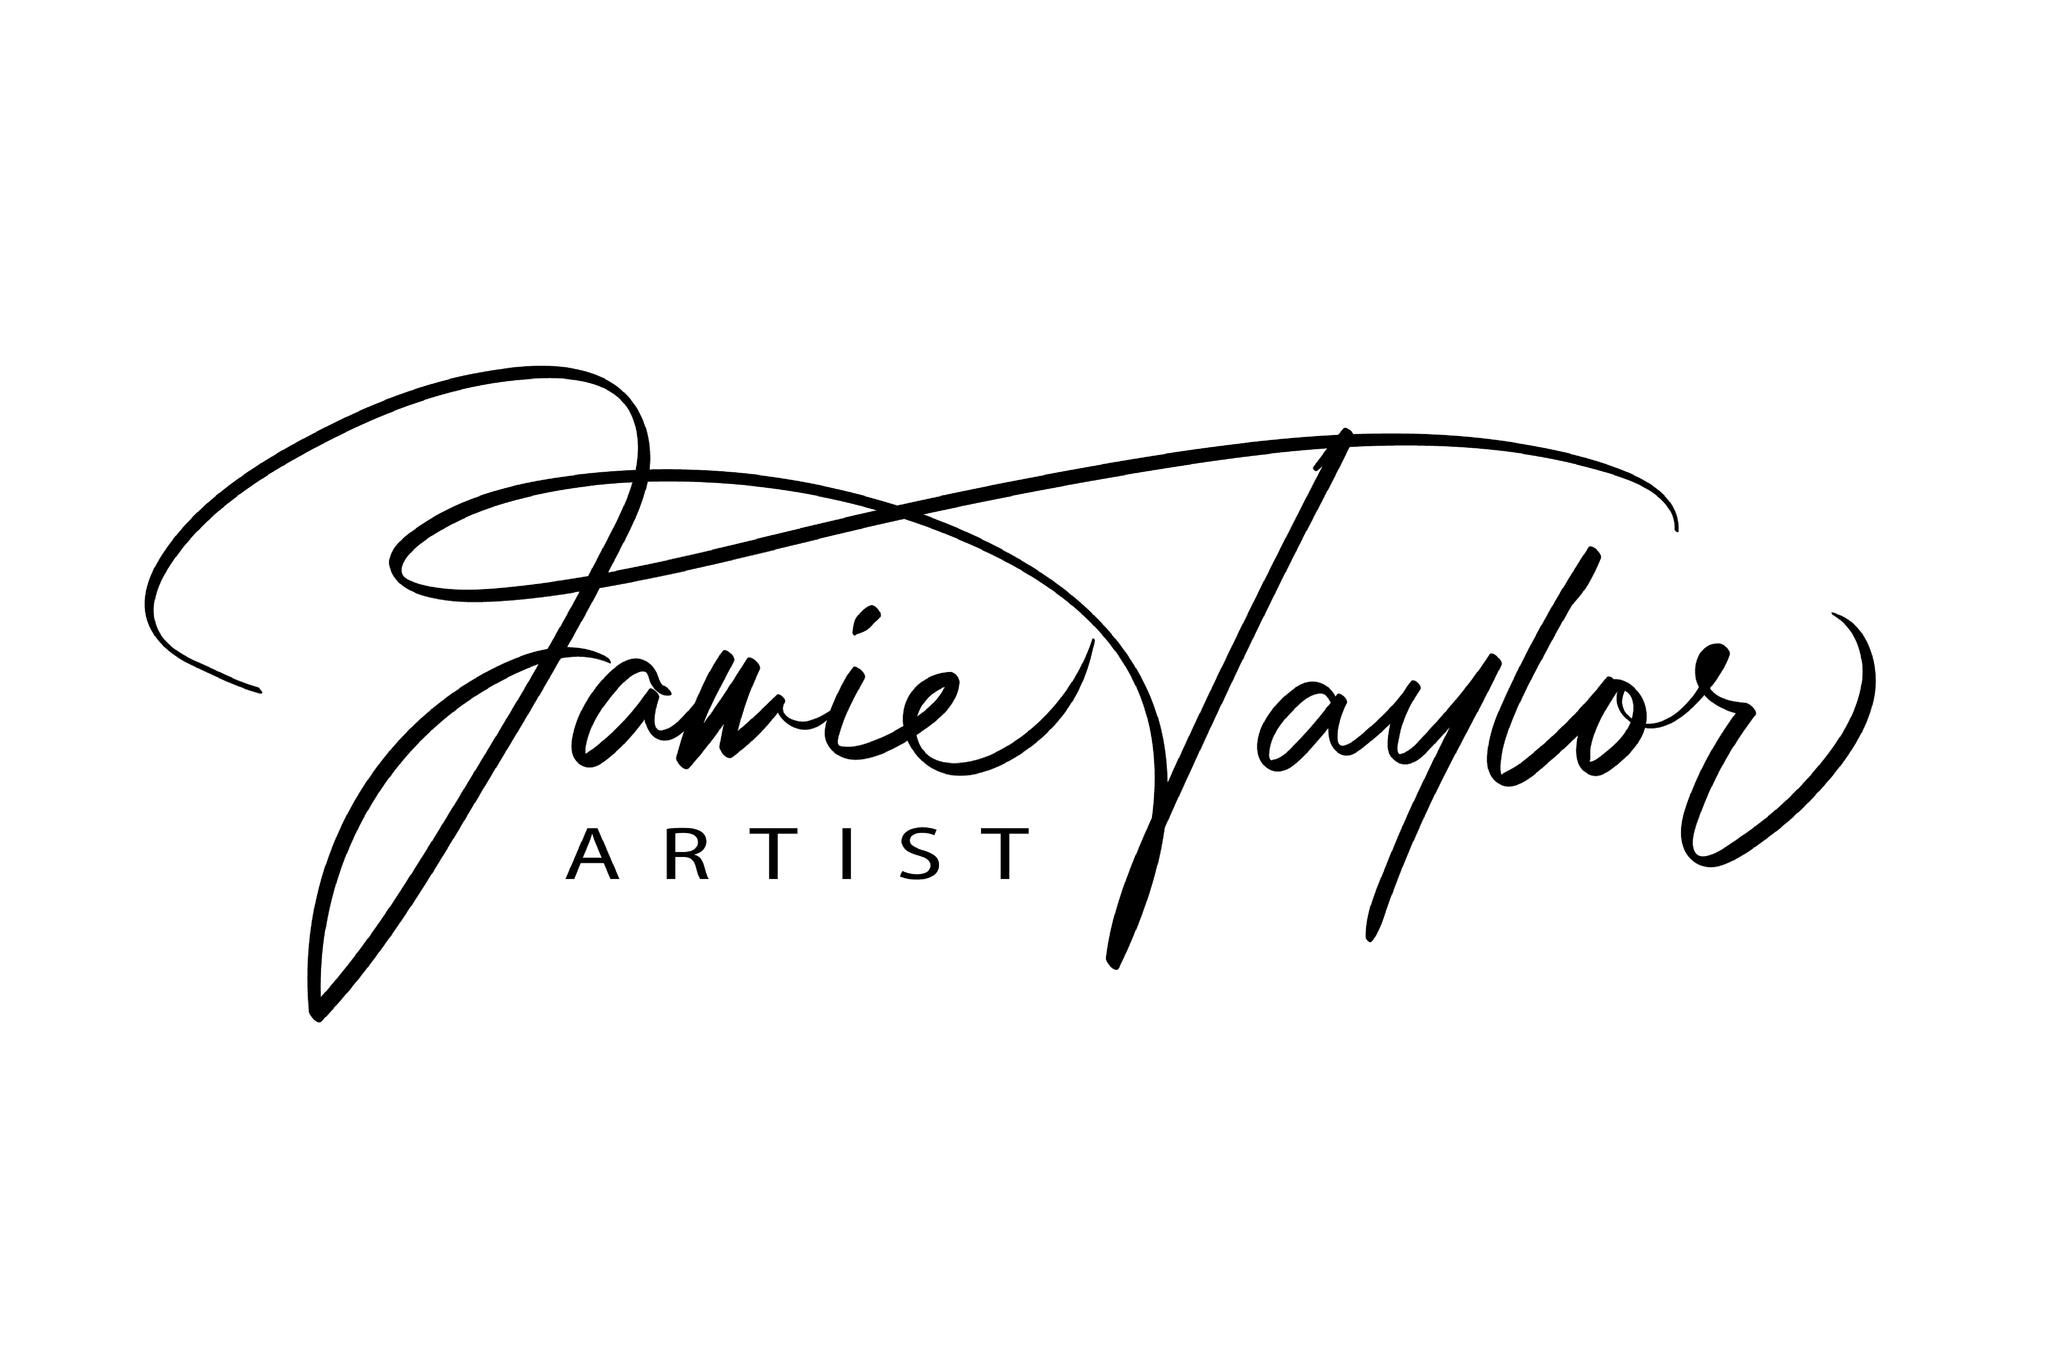 Jamie Taylor Art and Illustration Limited